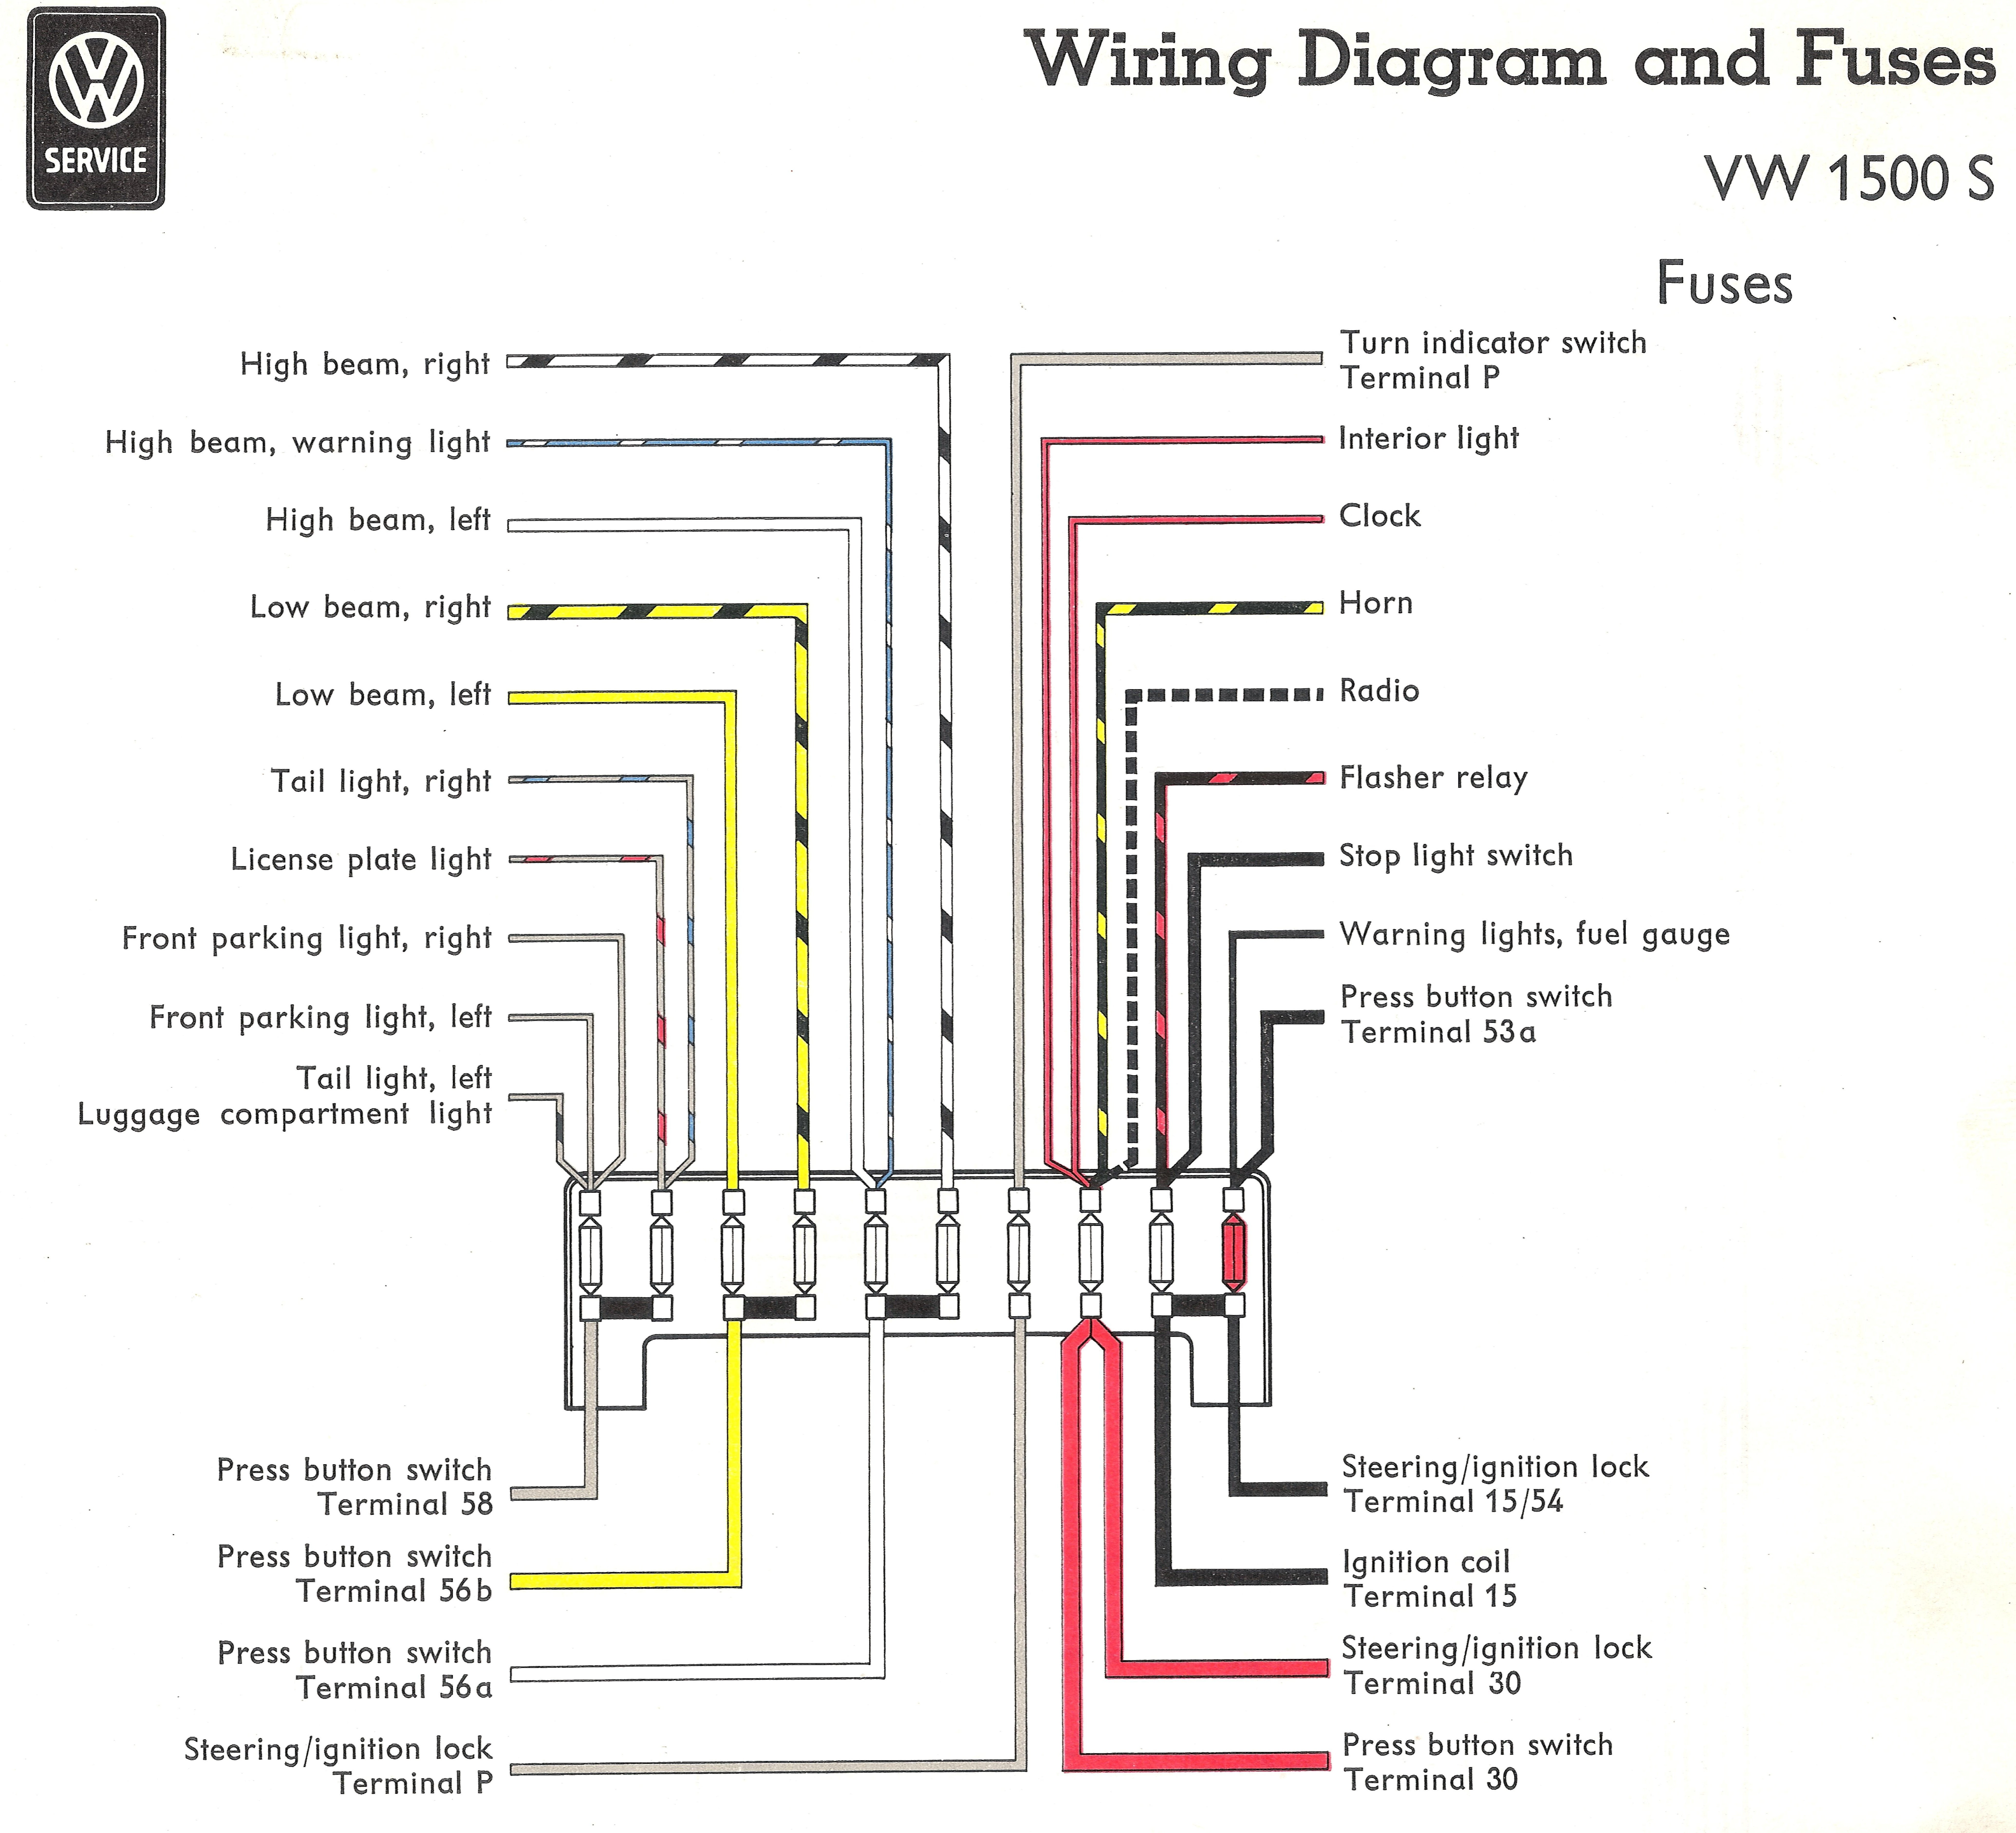 2001 Vw Passat Engine Diagram 2004 Audi A4 Coolant Flange Wiring And Fuses Info Of